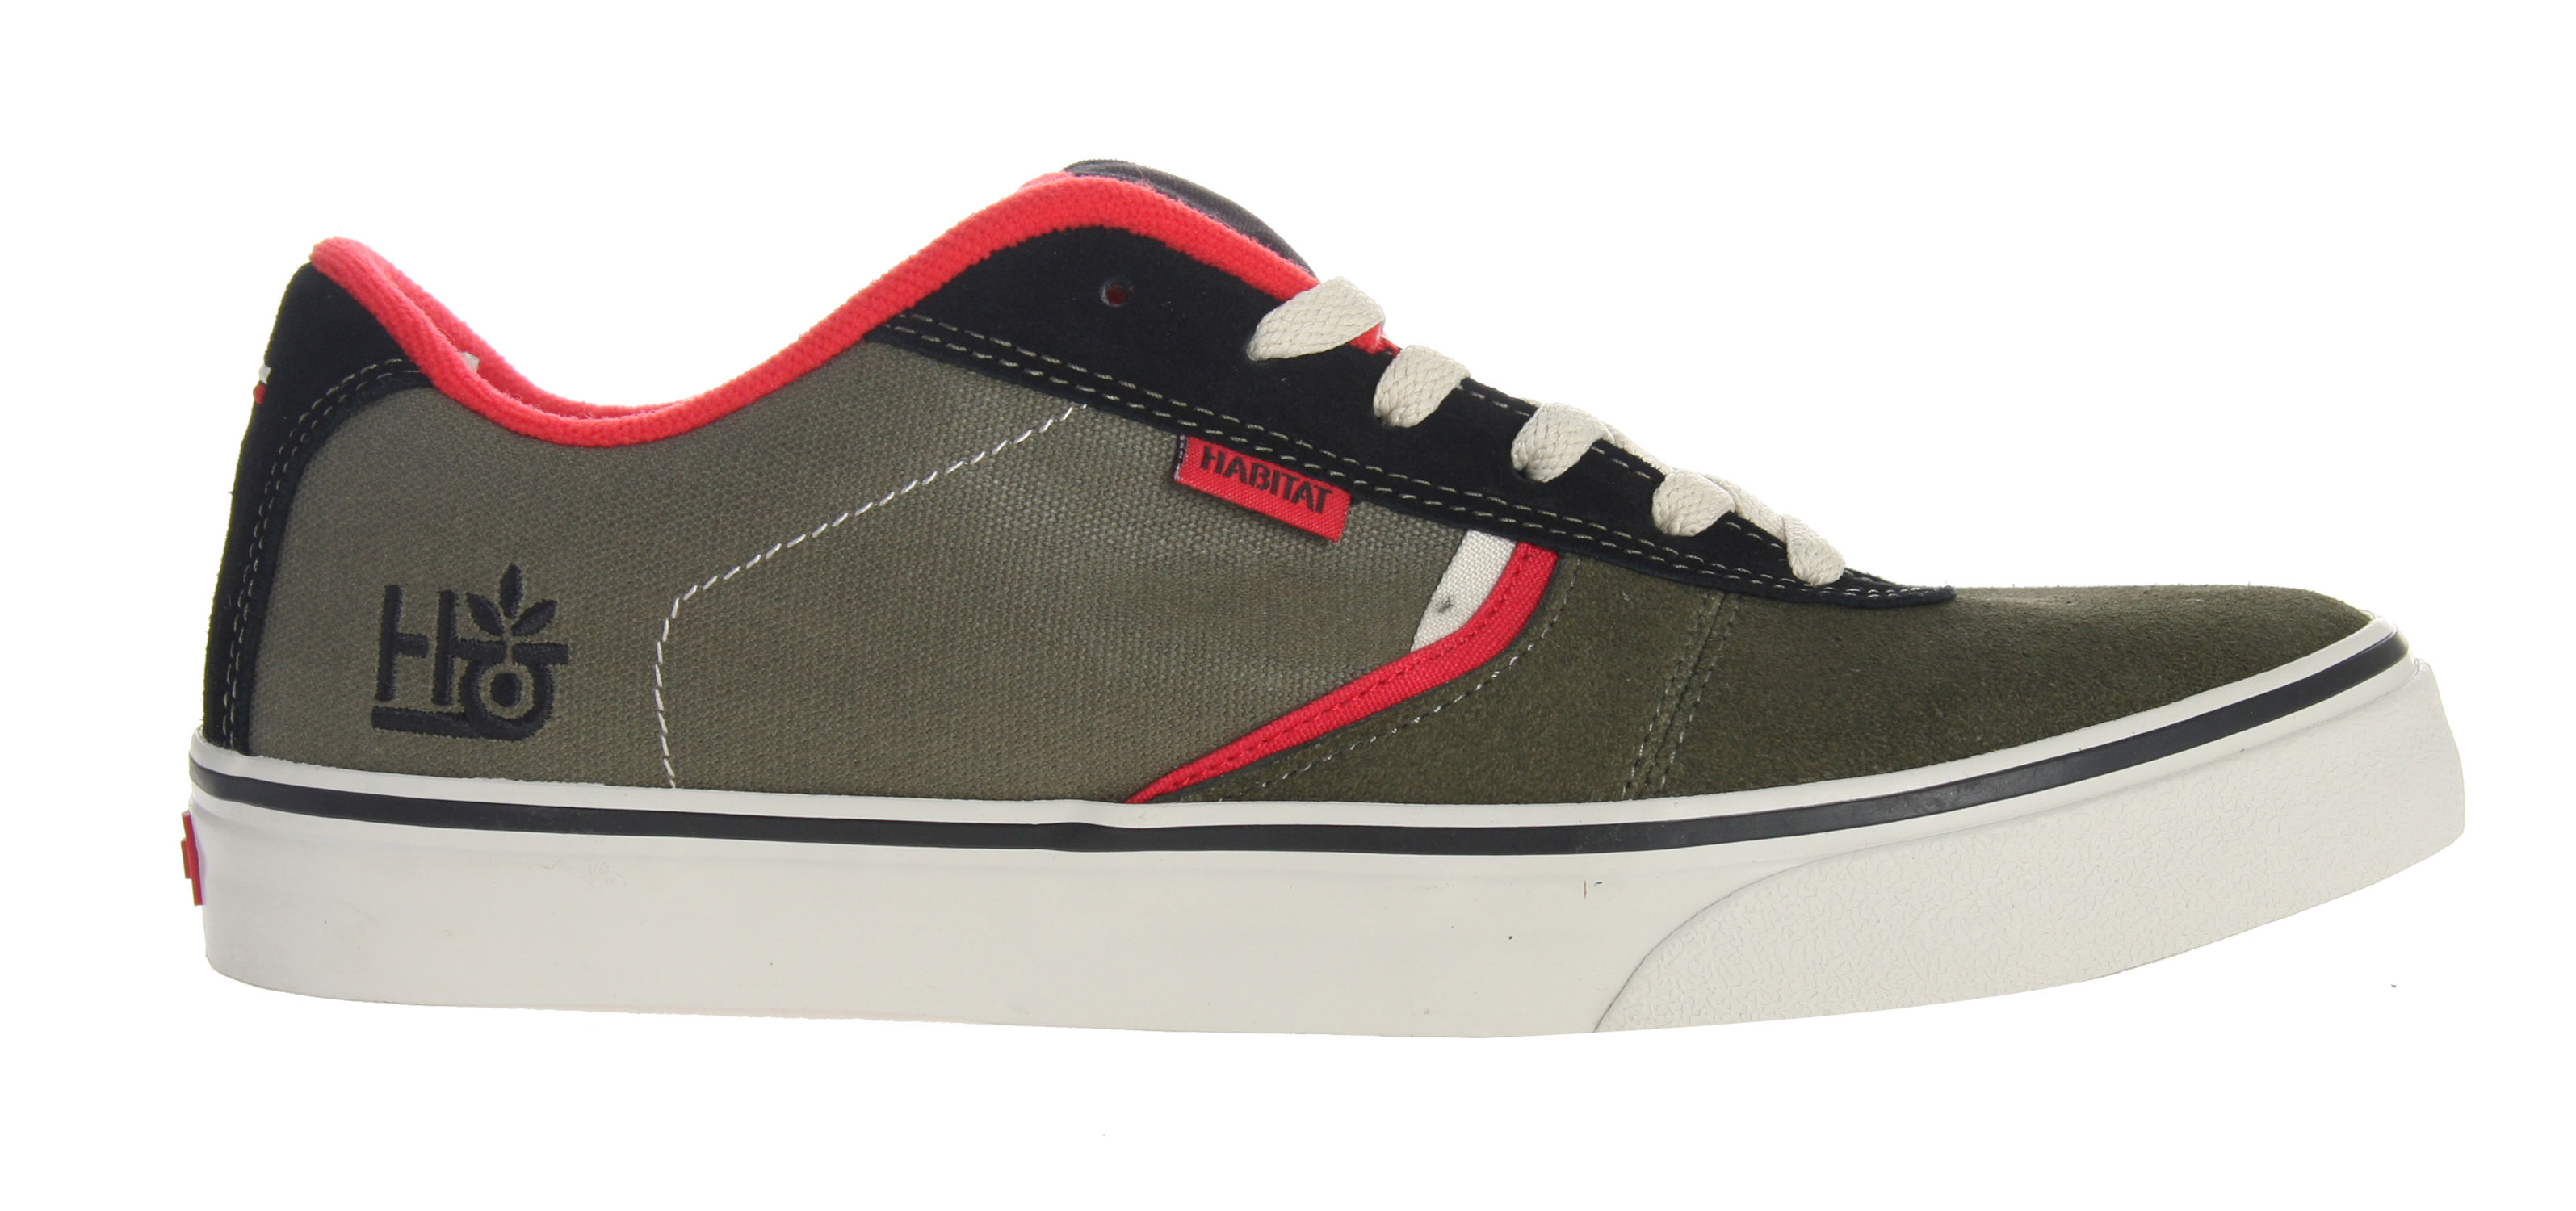 Skateboard The Lark skater shoe by Habit is designed in the ideal, low profile skate silhouette, constructed of high quality suede, synthetic nubuck and canvas with a seamless toecap and they are assembled using water based glue. The Lark features moderate tongue and collar padding along with a lightweight phylon foot bed with extra cushioning for the heel and a vulcanized outer sole made from recycled natural gum. These are great shoes for skaters and are ready to hit the asphalt in a park or on the streets.Key Features of the Habitat Lark Skate Shoes: Ideal skate silhouette Immoderate tongue and collar padding Seamless toecap Suede, canvas, and synthetic nubuck upper Recycled regrind/natural gum outsole Assembled with water-based glues Vulcanized outsole construction Lightweight phylon footbed with added heel cushioning - $44.95